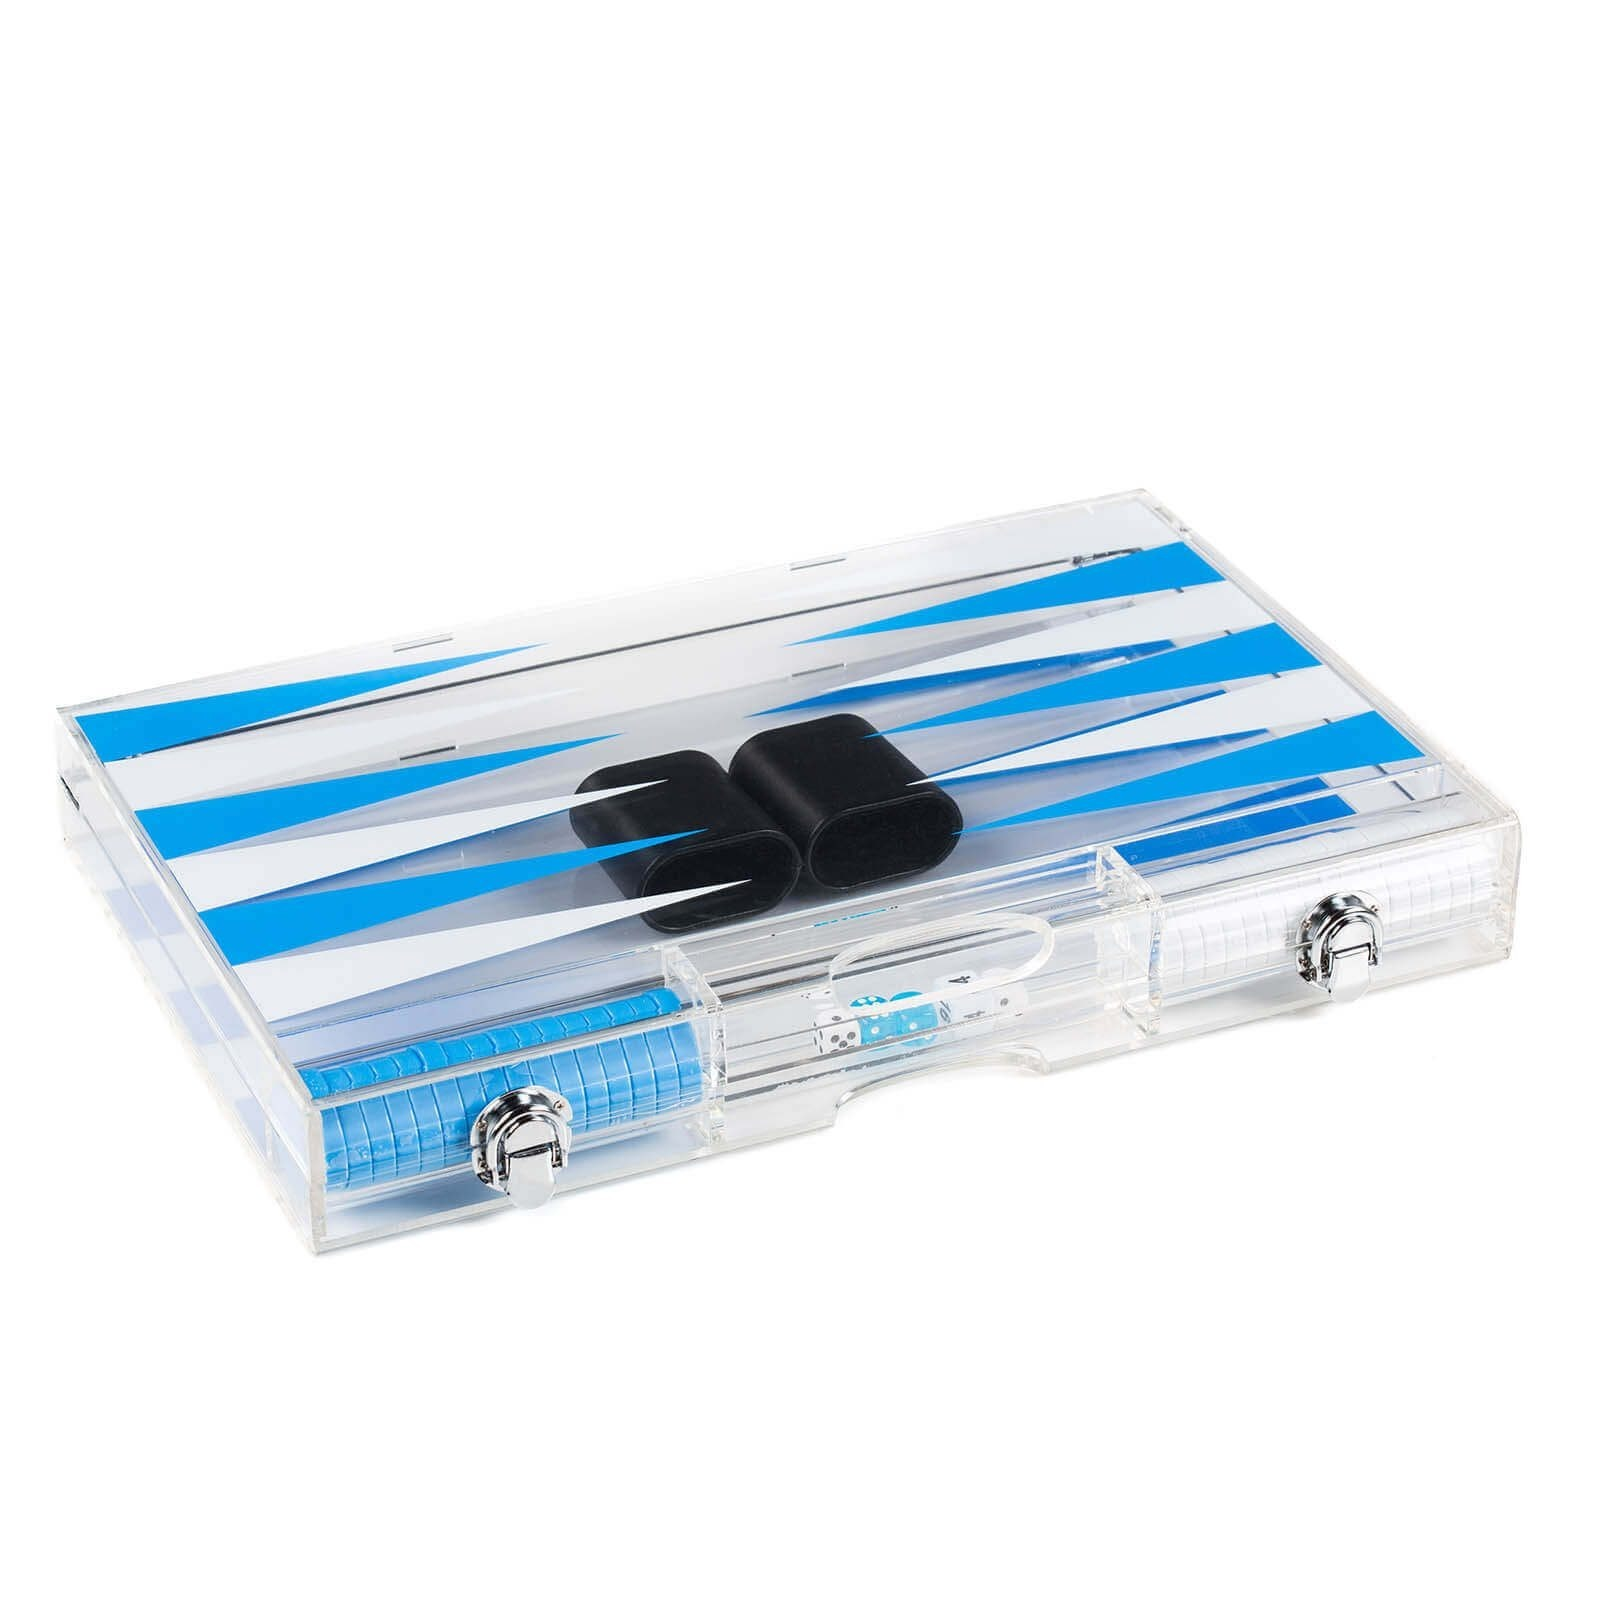 Acrylic Backgammon Set in Baby Blue and White Closed